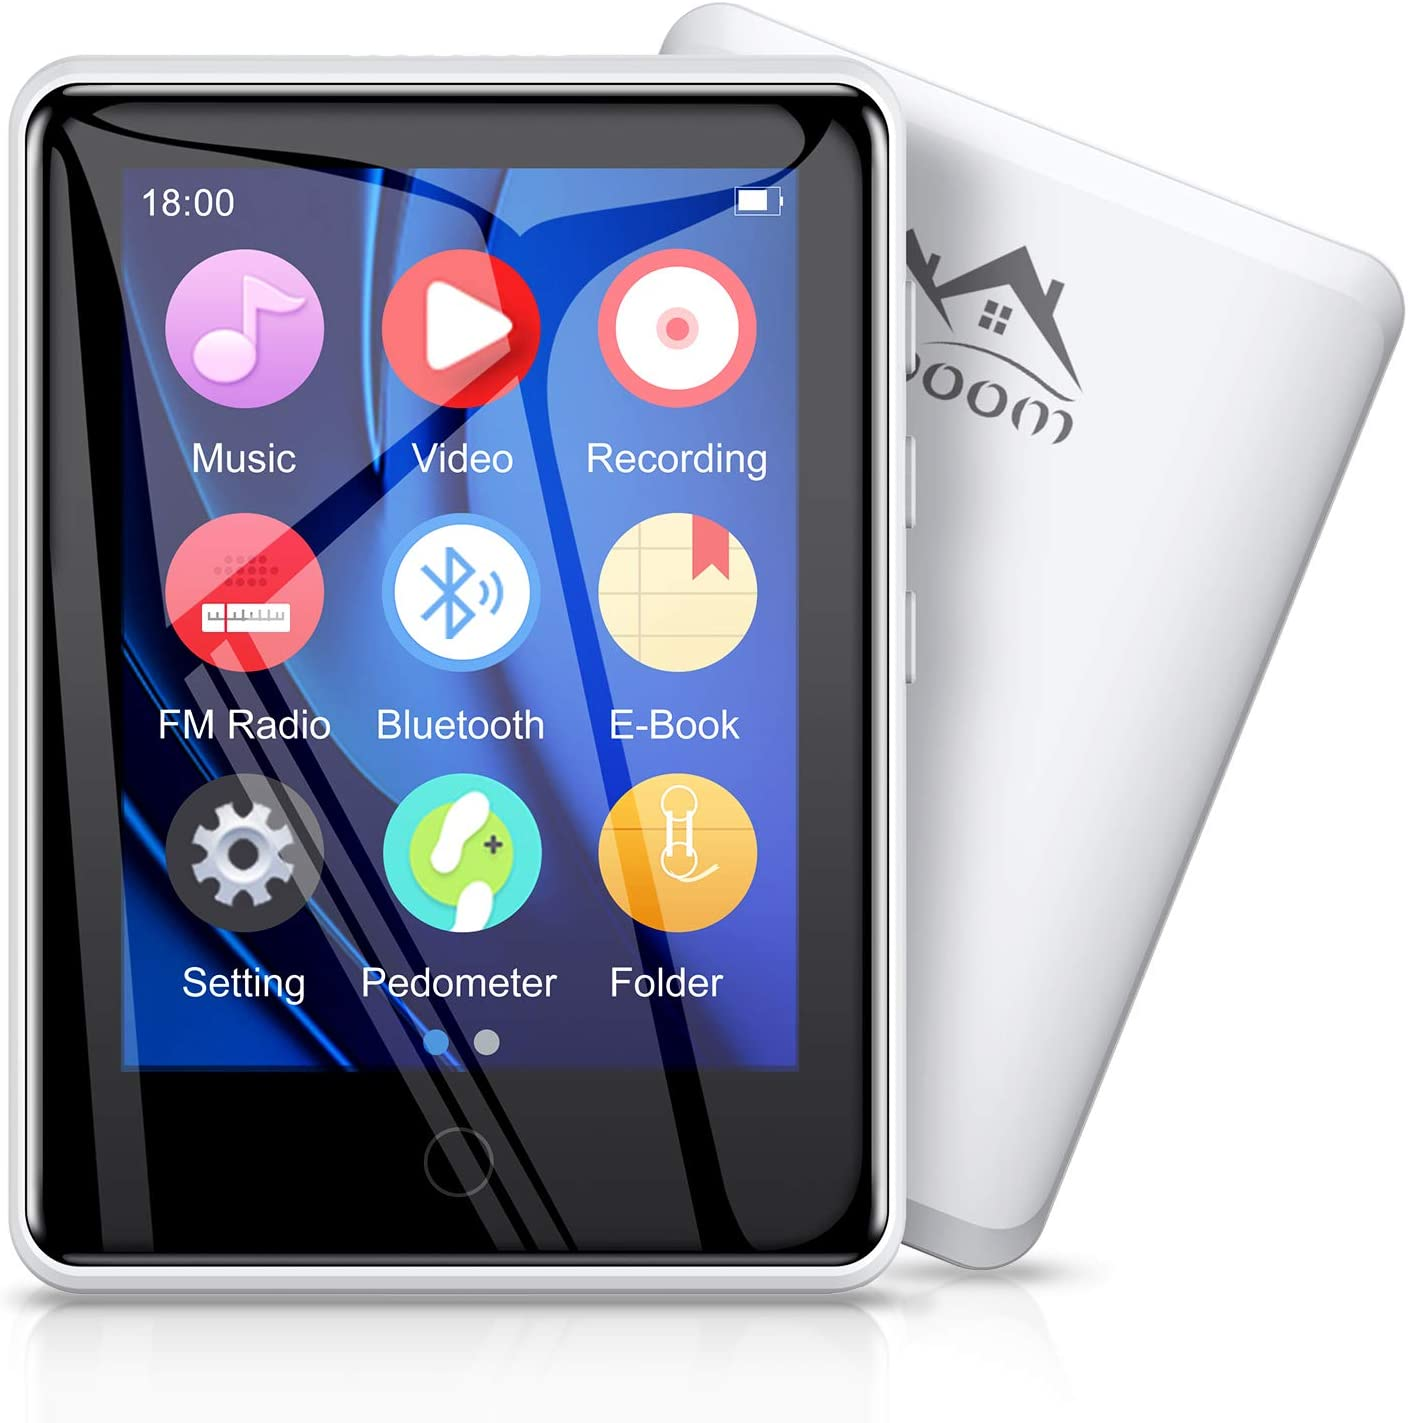 Timoom M6 32GB Reproductor MP3 Bluetooth 5.0 Running Reproductor MP4 con Pantalla de 2.8 Pulgadas y Botón Táctil Radio FM/E-Book/Video/Archivo/Foto, Soporte Expandible hasta 128G